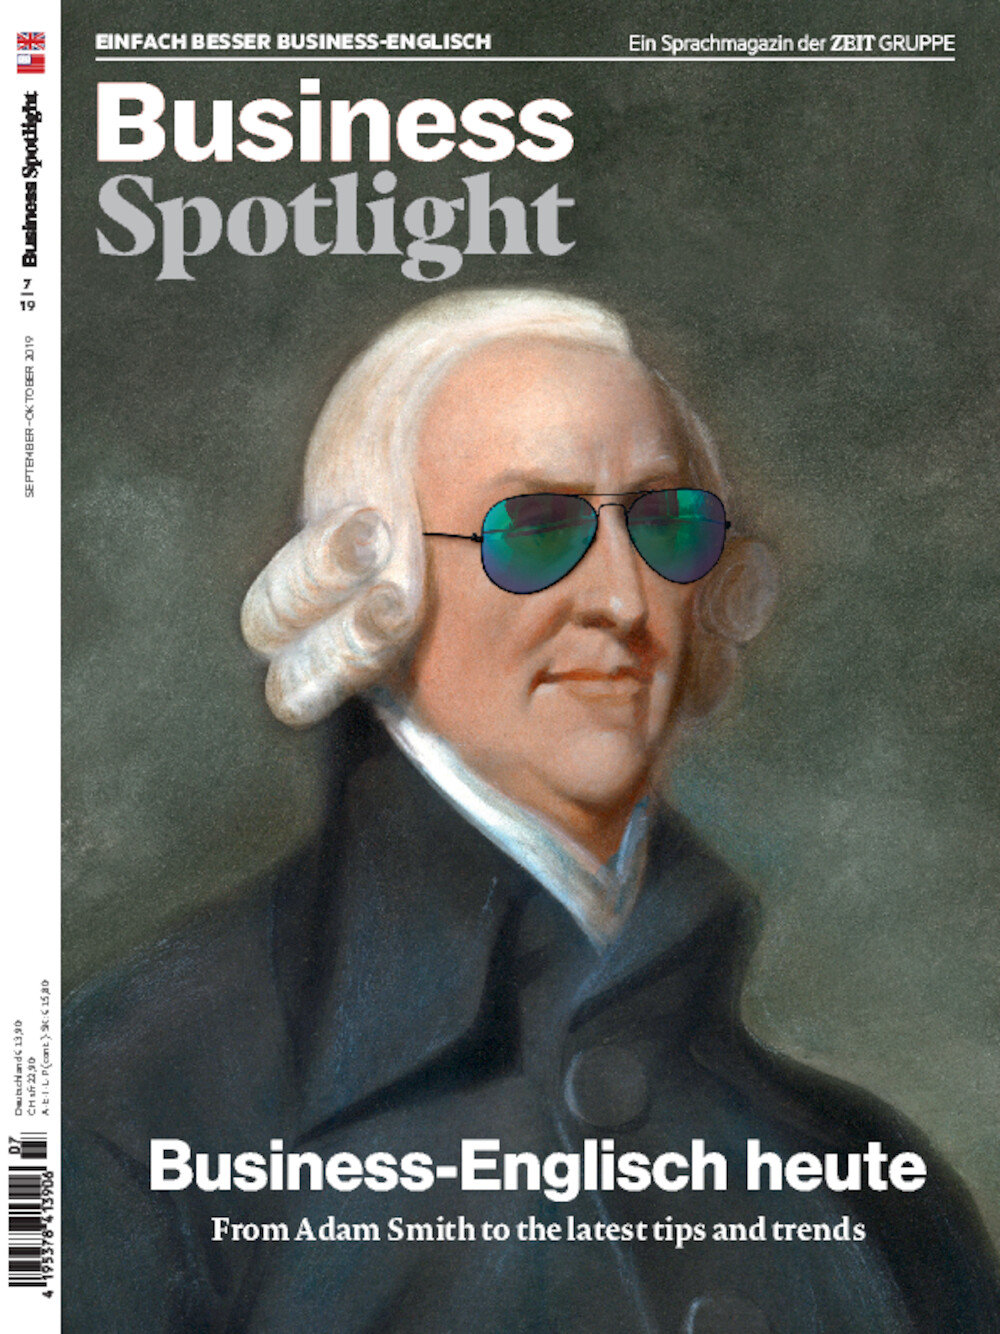 Business Spotlight ePaper 07/2019